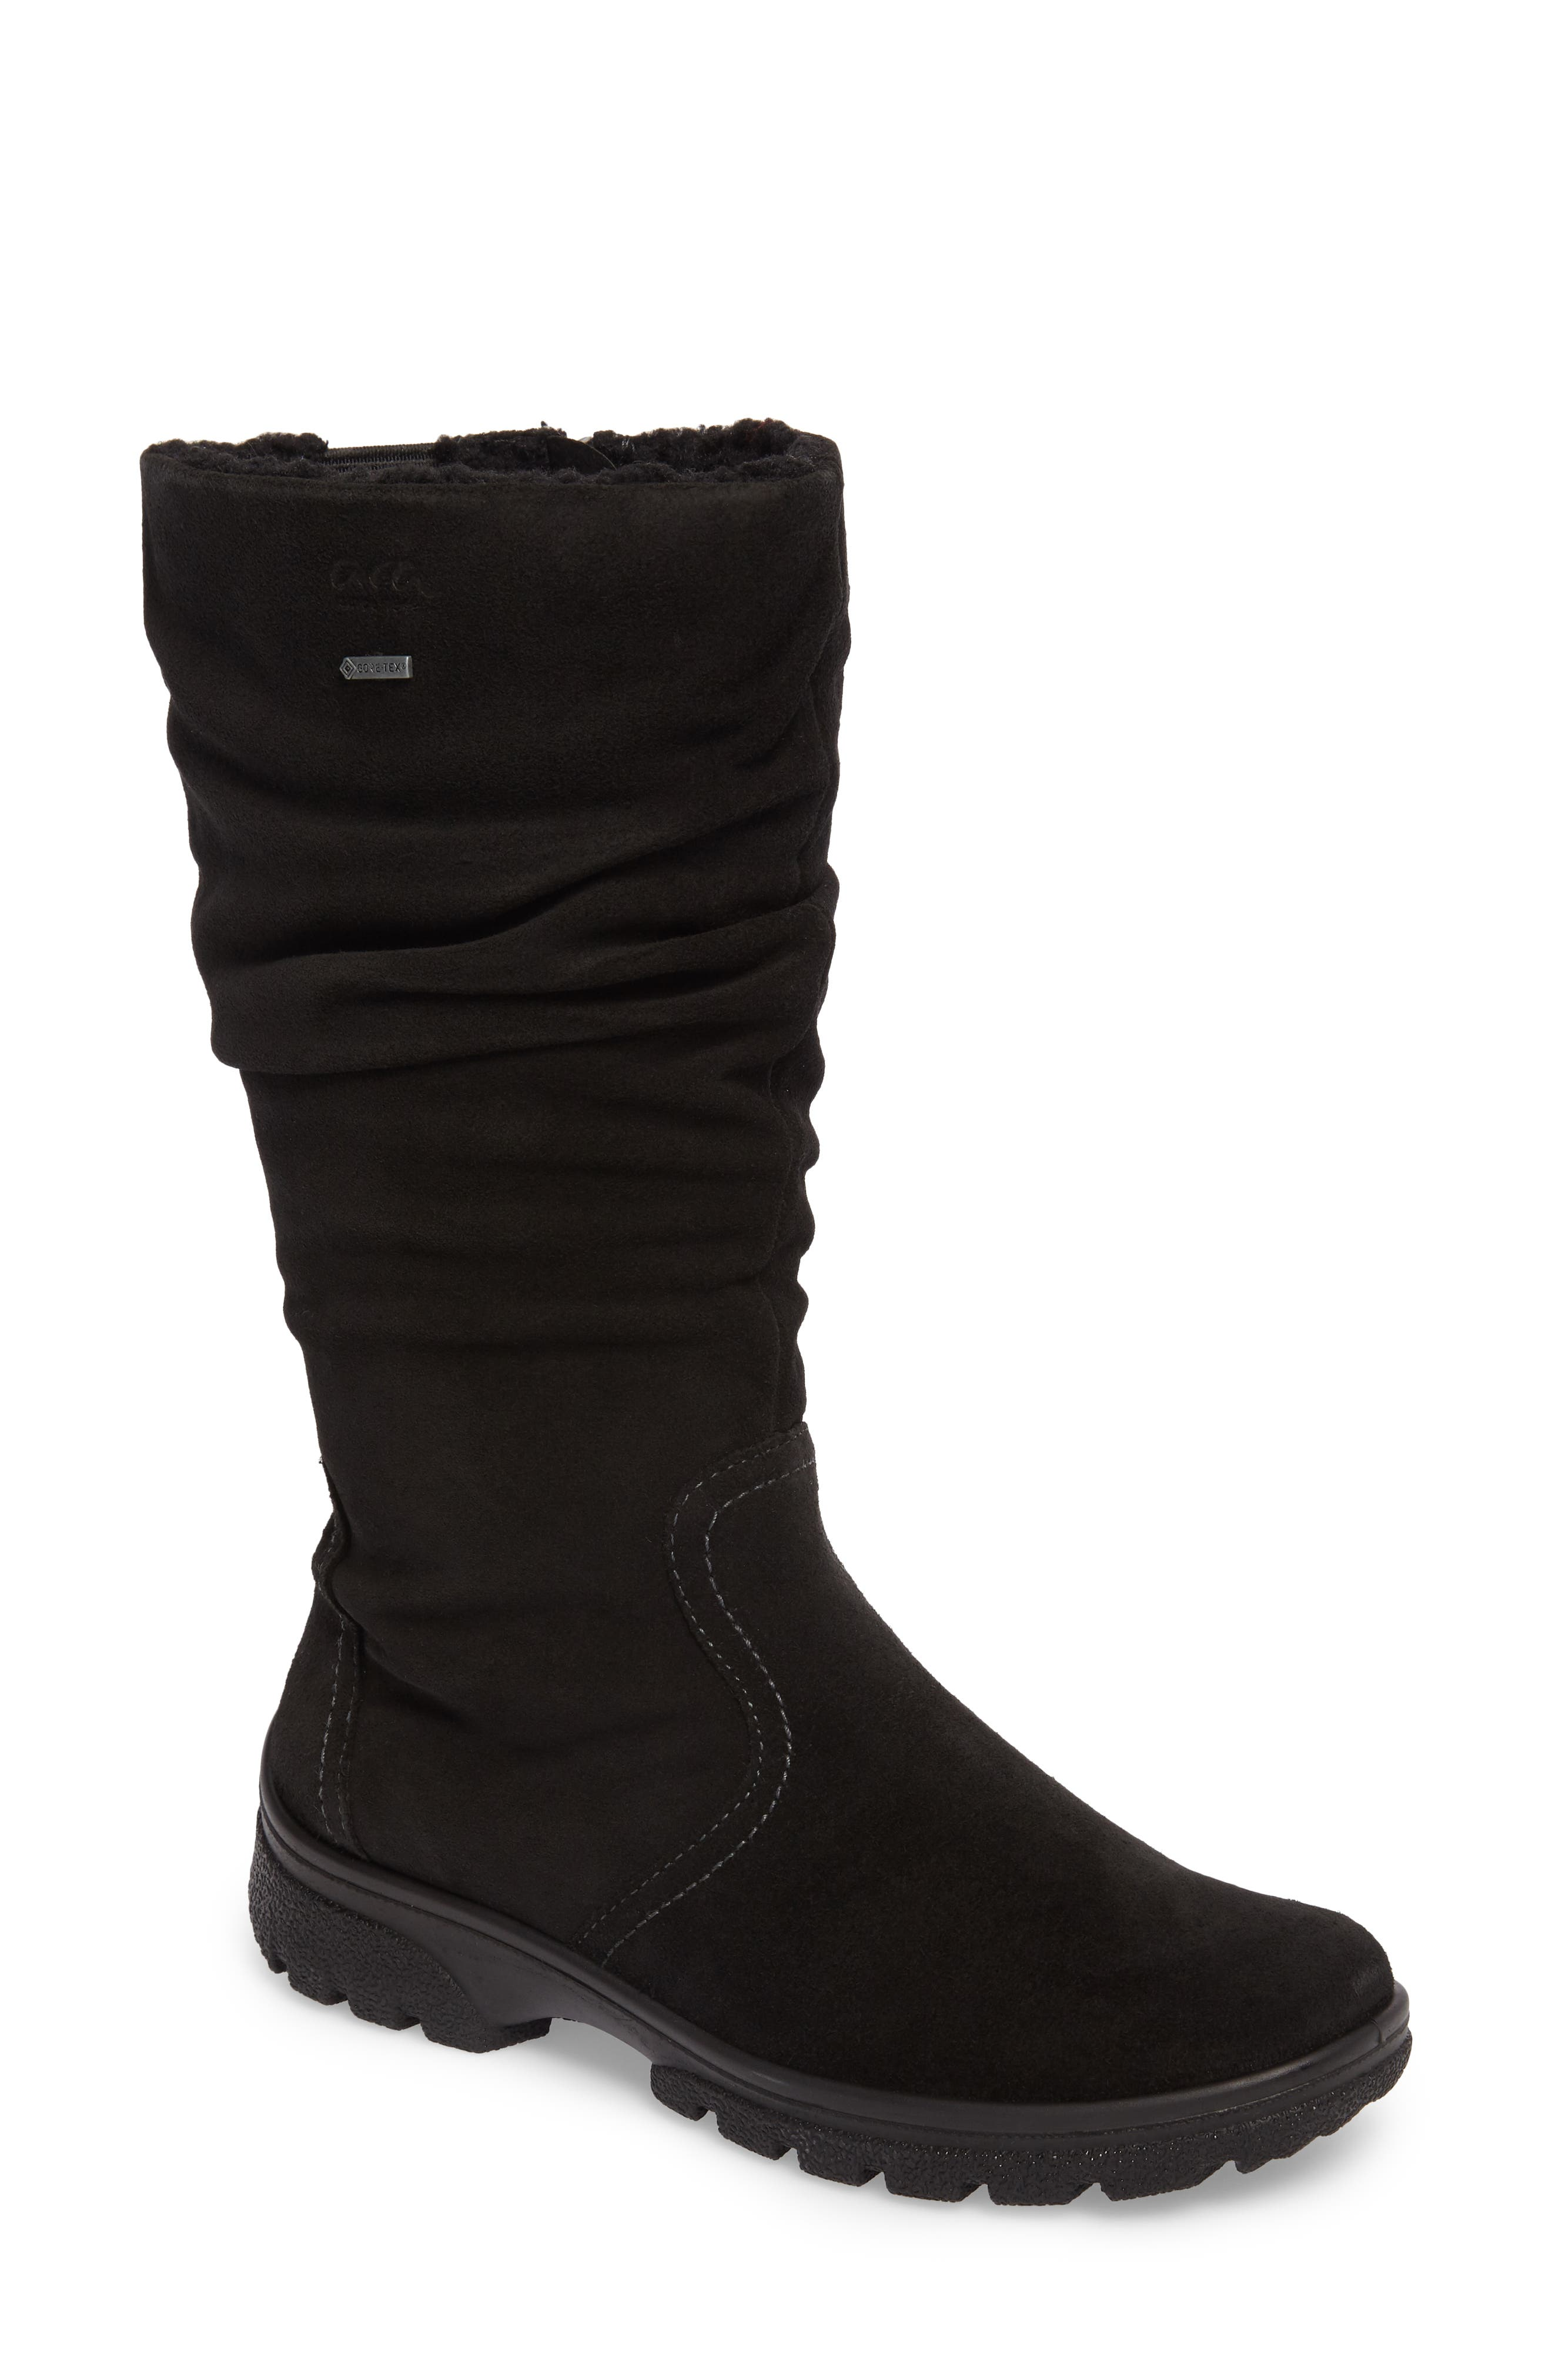 Sydney Waterproof Gore-Tex<sup>®</sup> Boot,                             Main thumbnail 1, color,                             001